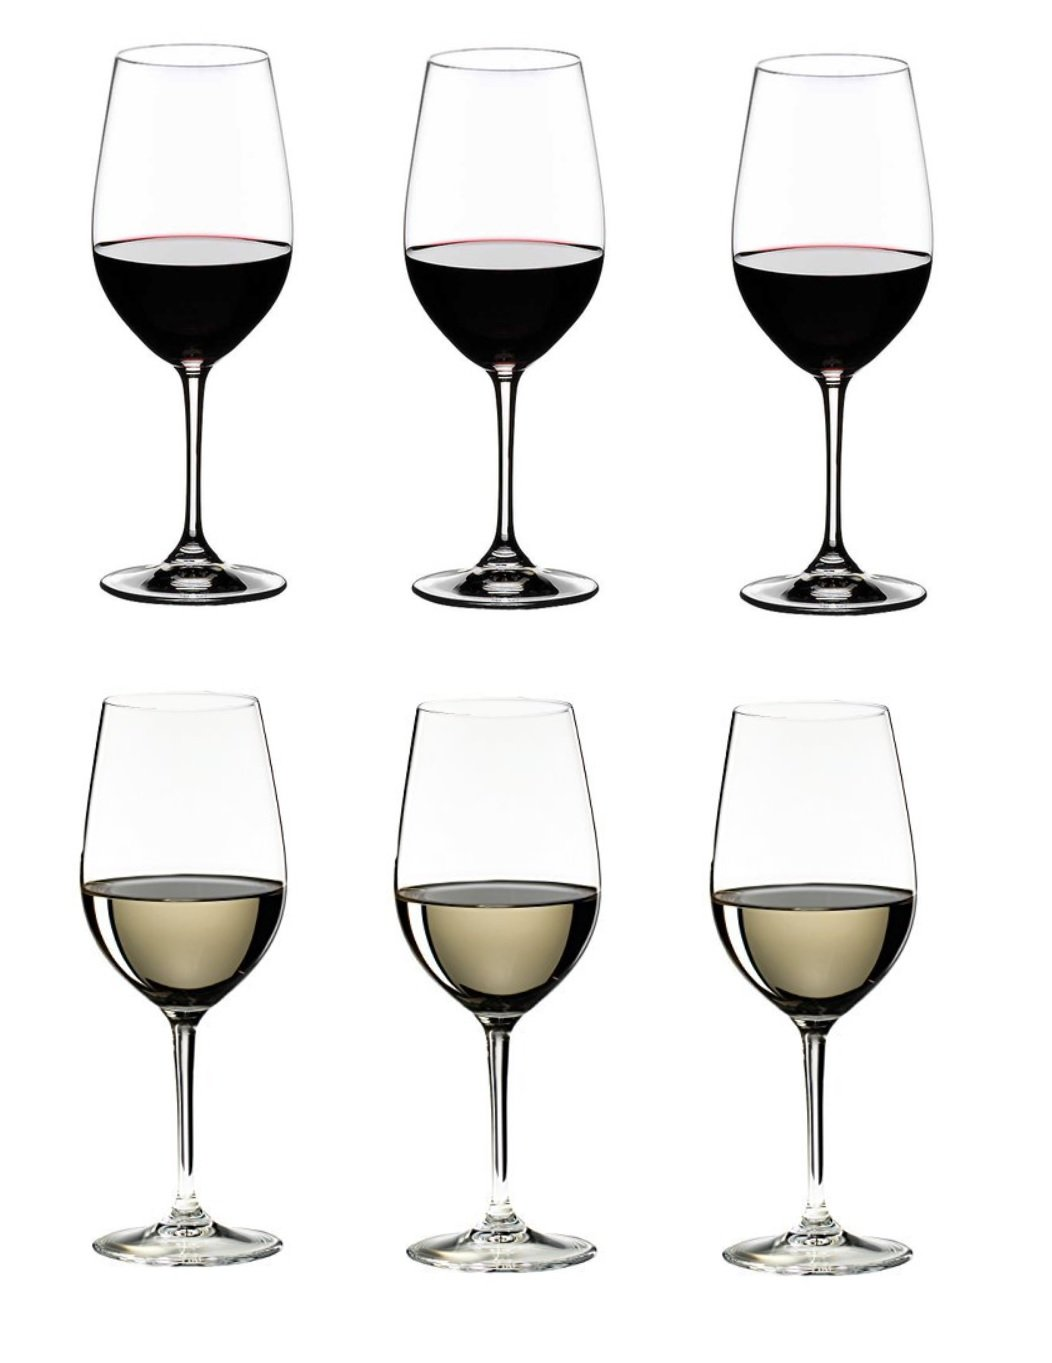 Riedel 260 Years Celebration, VINUM Riesling/Zinfandel Glasses, Set of 6